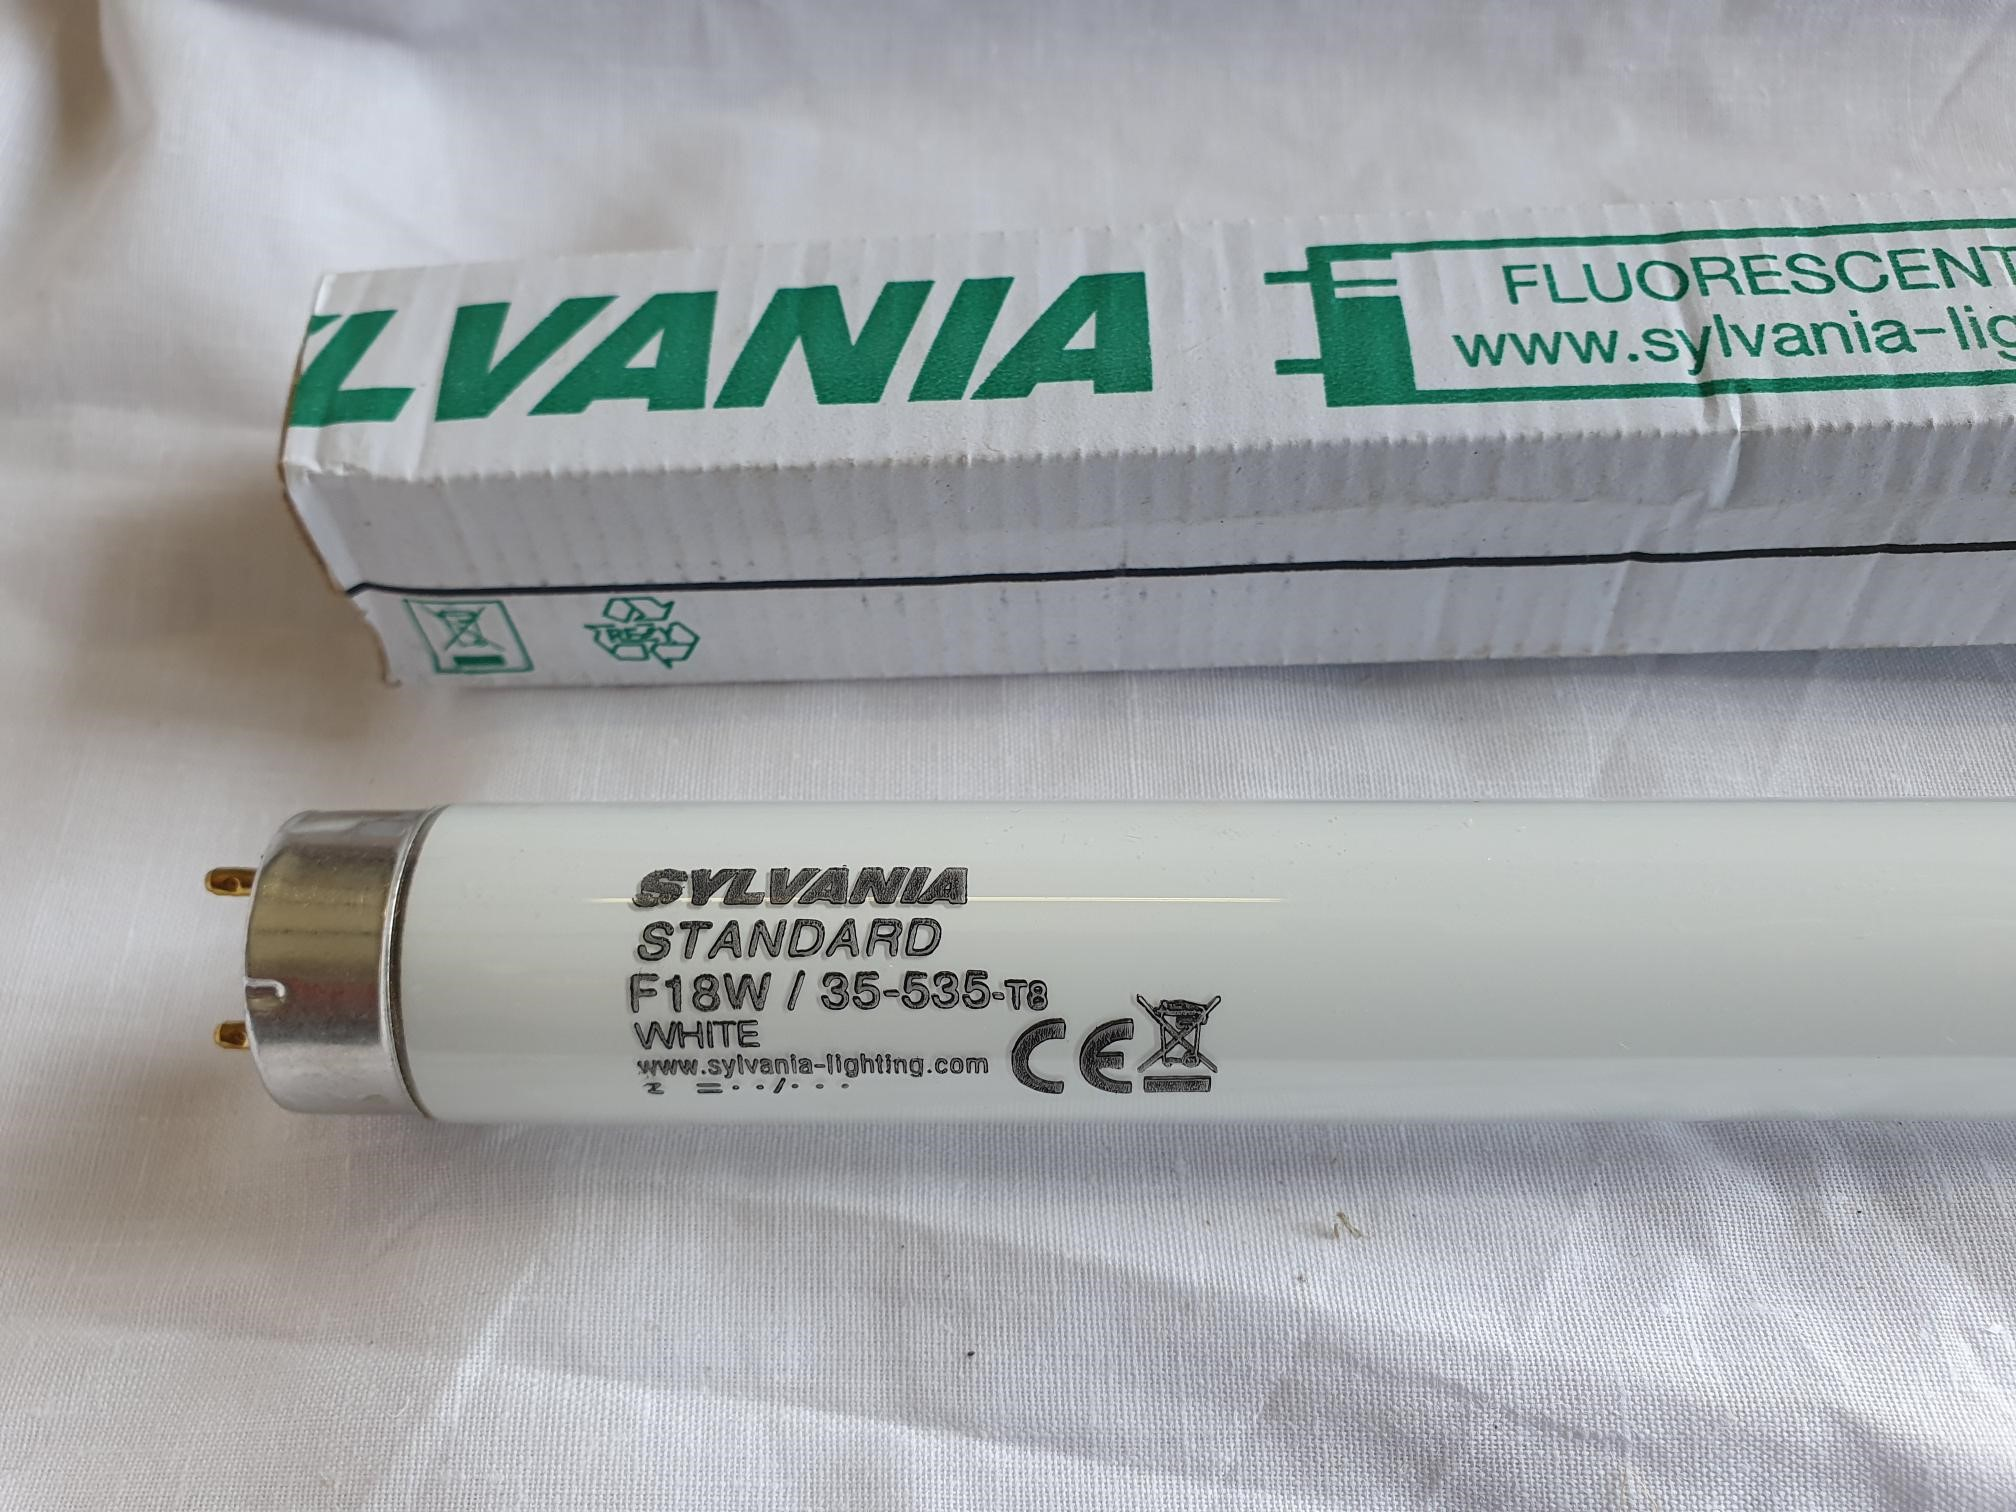 Sylvania Flourescent Tube Standard F18 W 35 535 T8 White 590 Mm Long